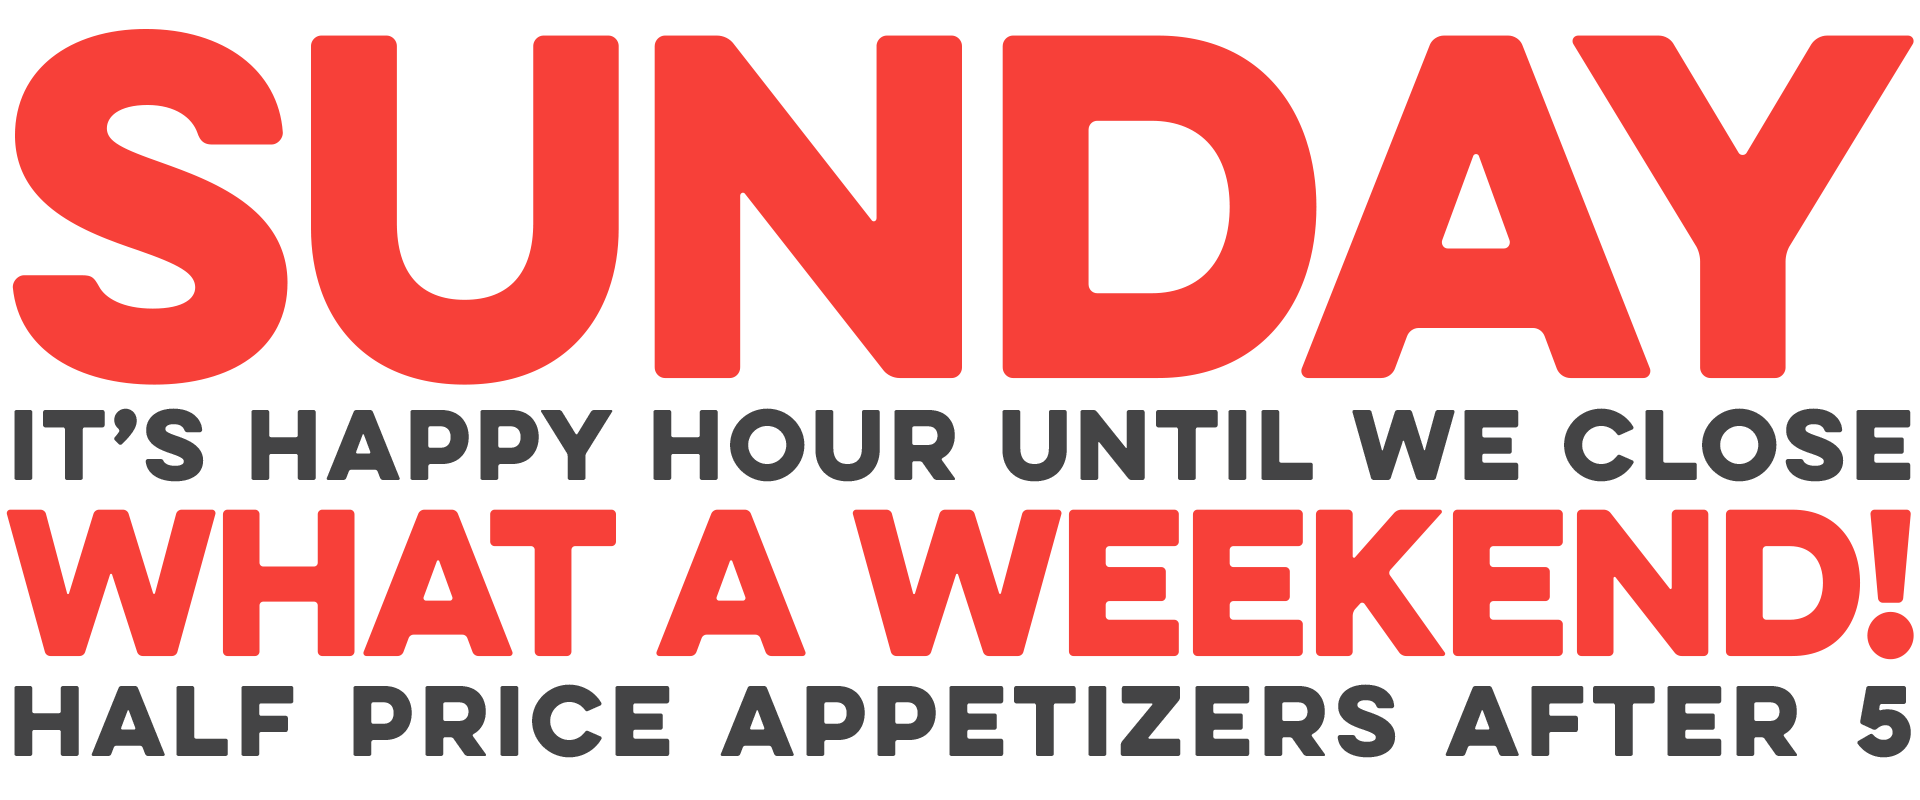 Sunday it's happy hour until we close and half priced appetizers after 5.